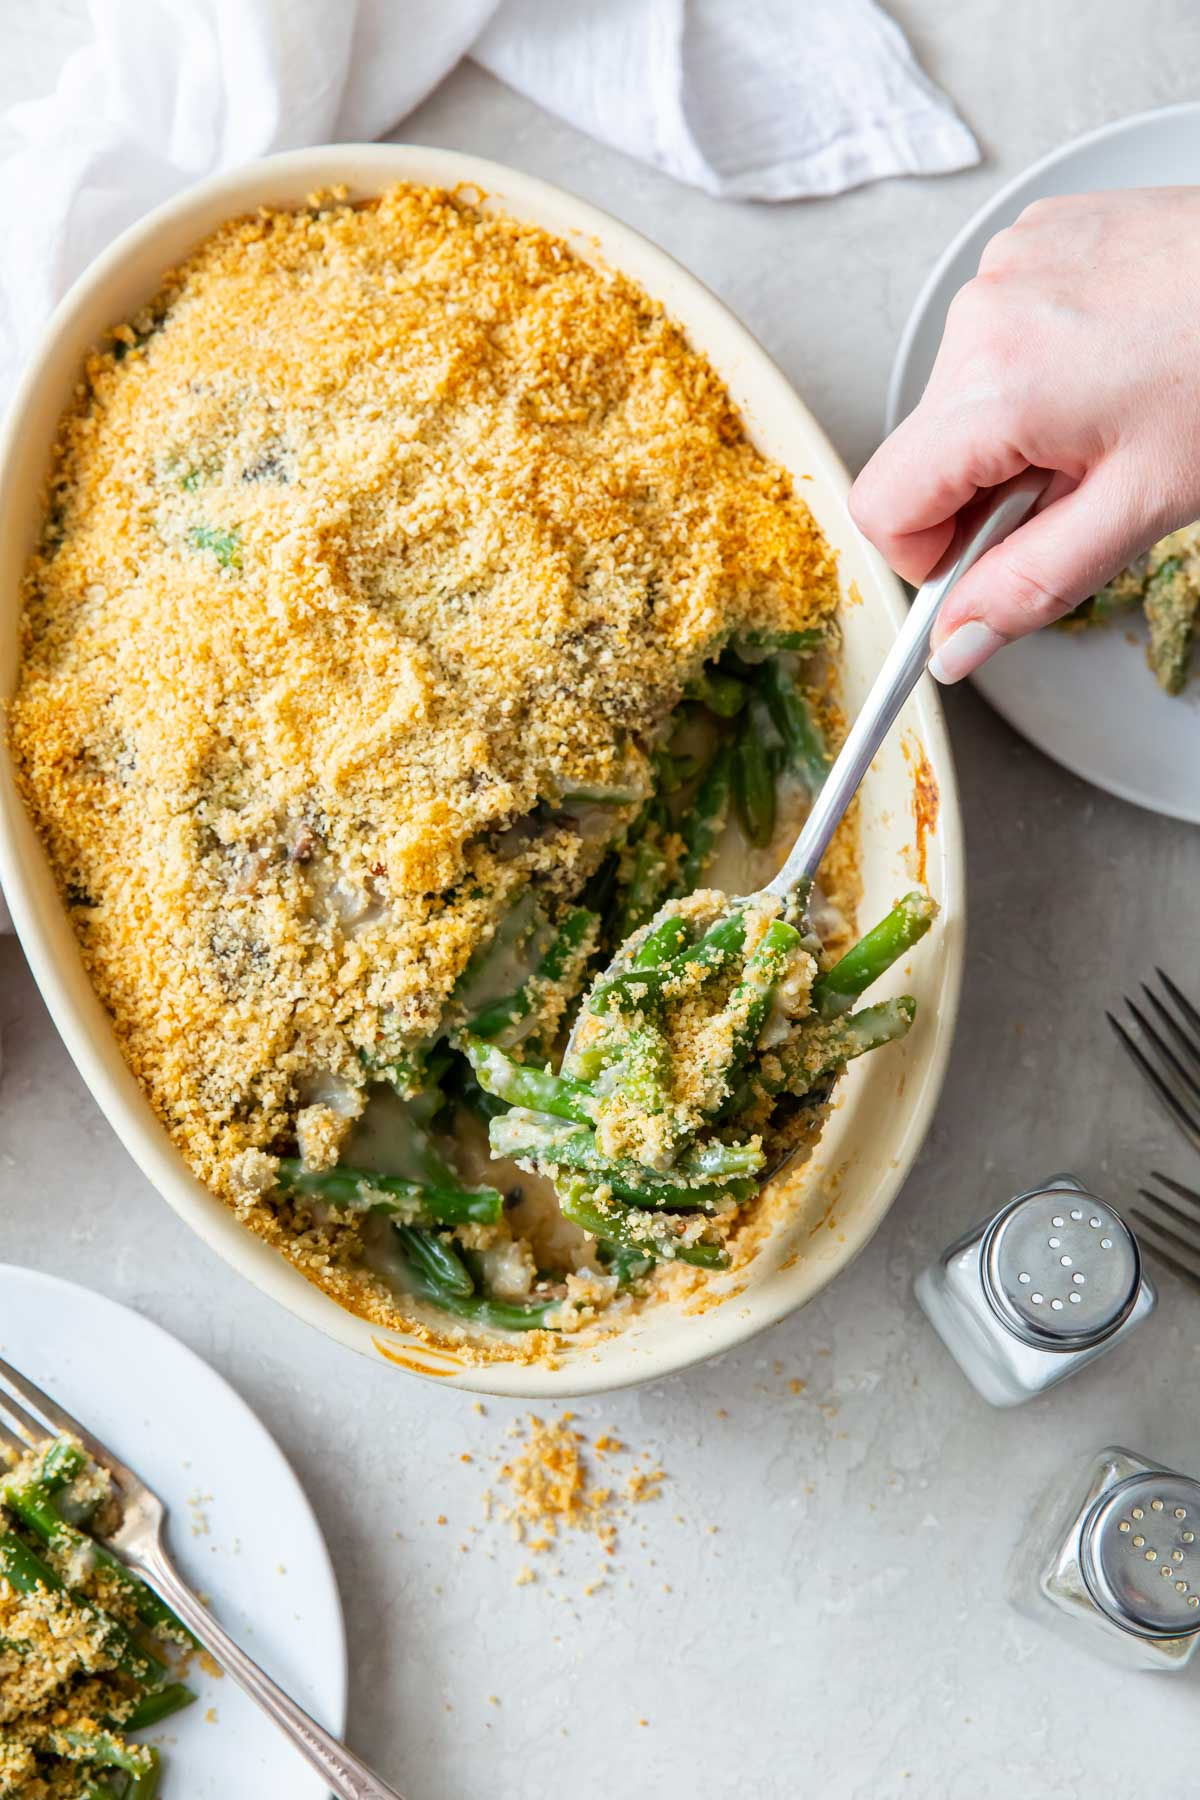 serving green bean casserole with spoon from baking dish